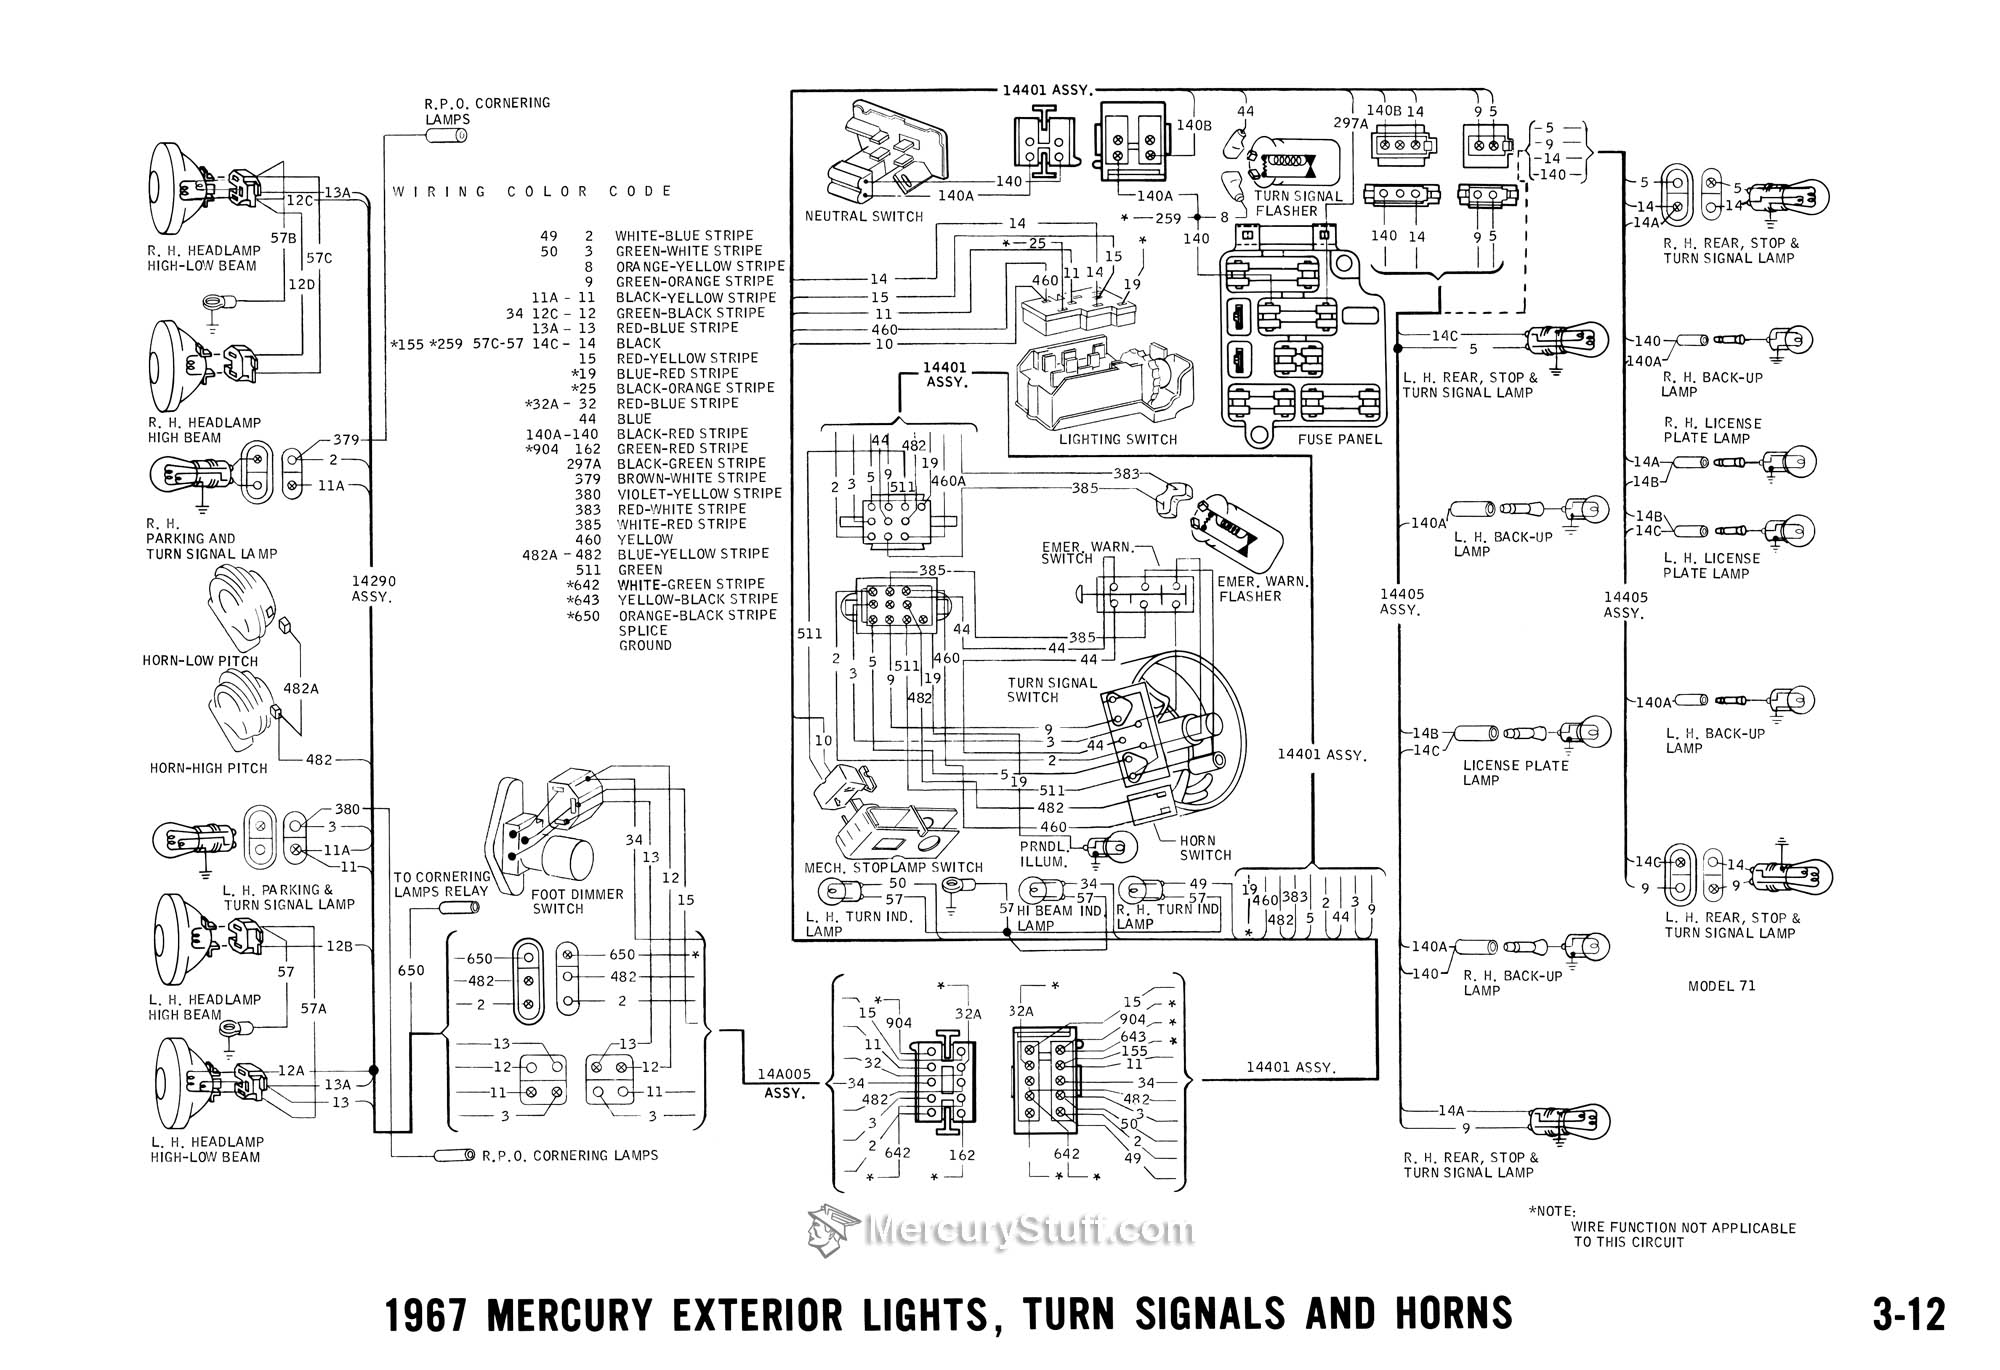 1967 mercury exterior lights turn signals horns wiring diagram 2006 mercury grand marquis the wiring diagram mercury 14 pin wiring harness diagram at couponss.co